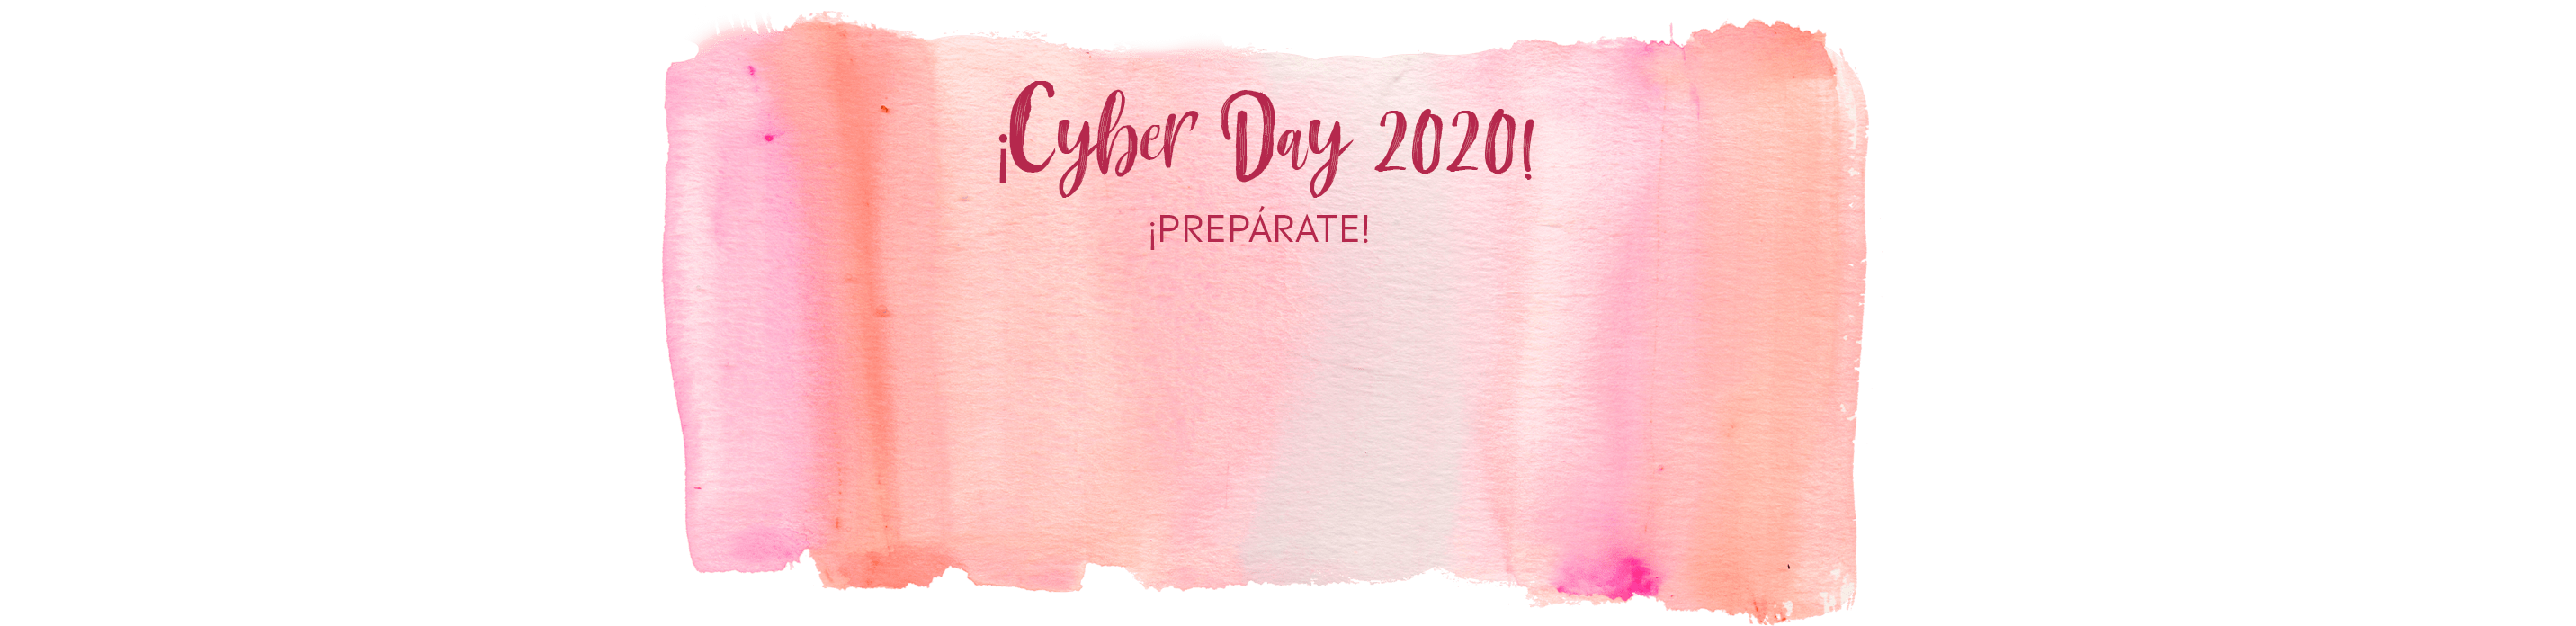 Umbrale, Cyber 2020